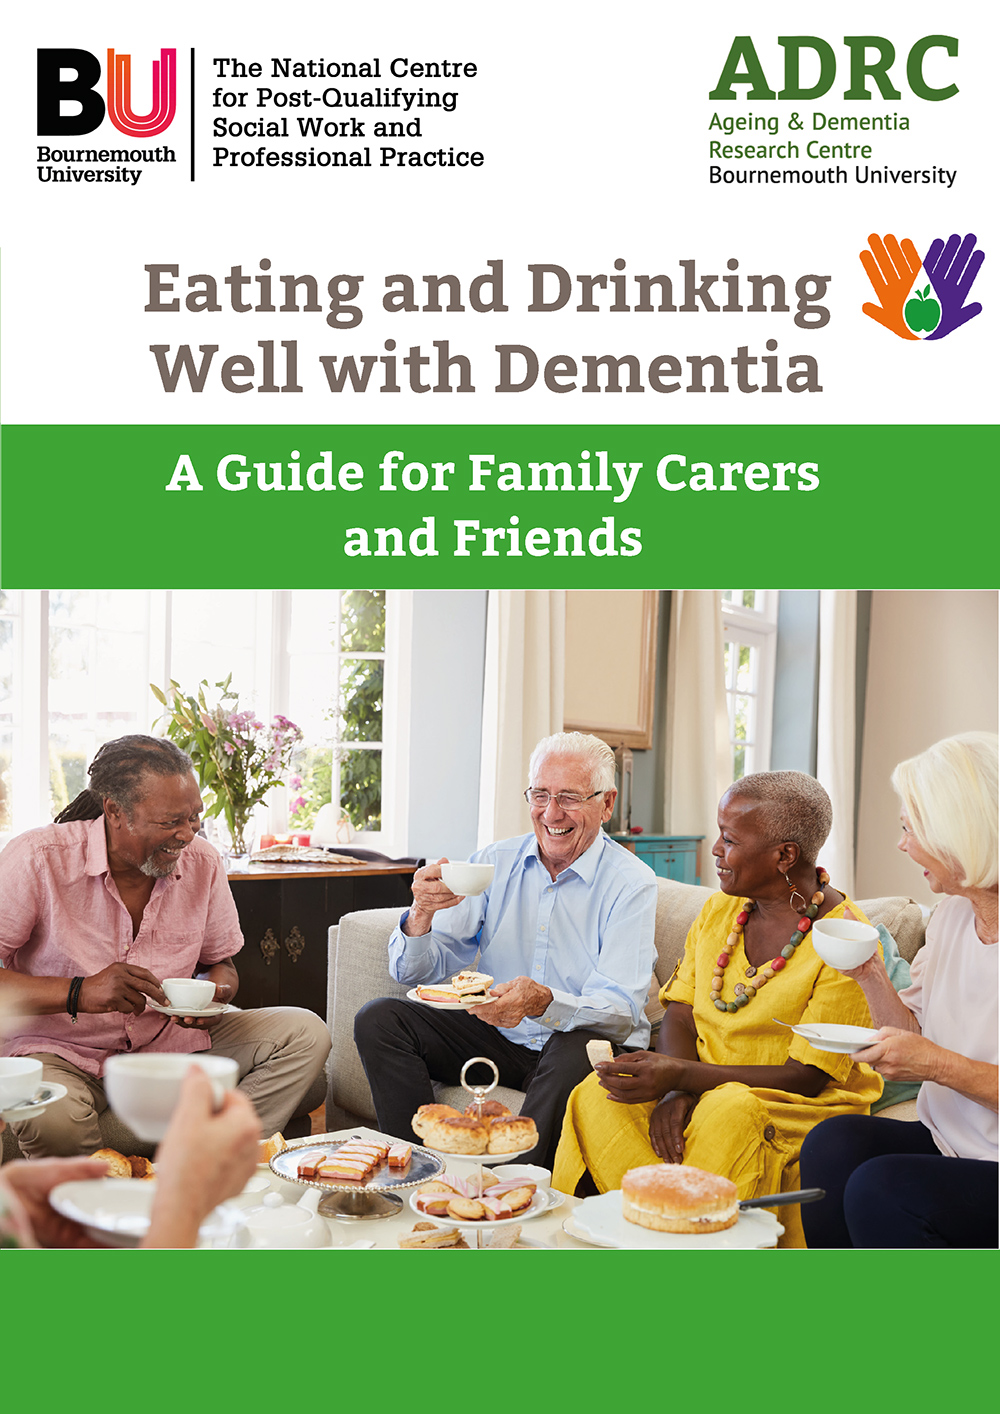 Eating and Drinking Well with Dementia: A Guide for Family Carers and Friends